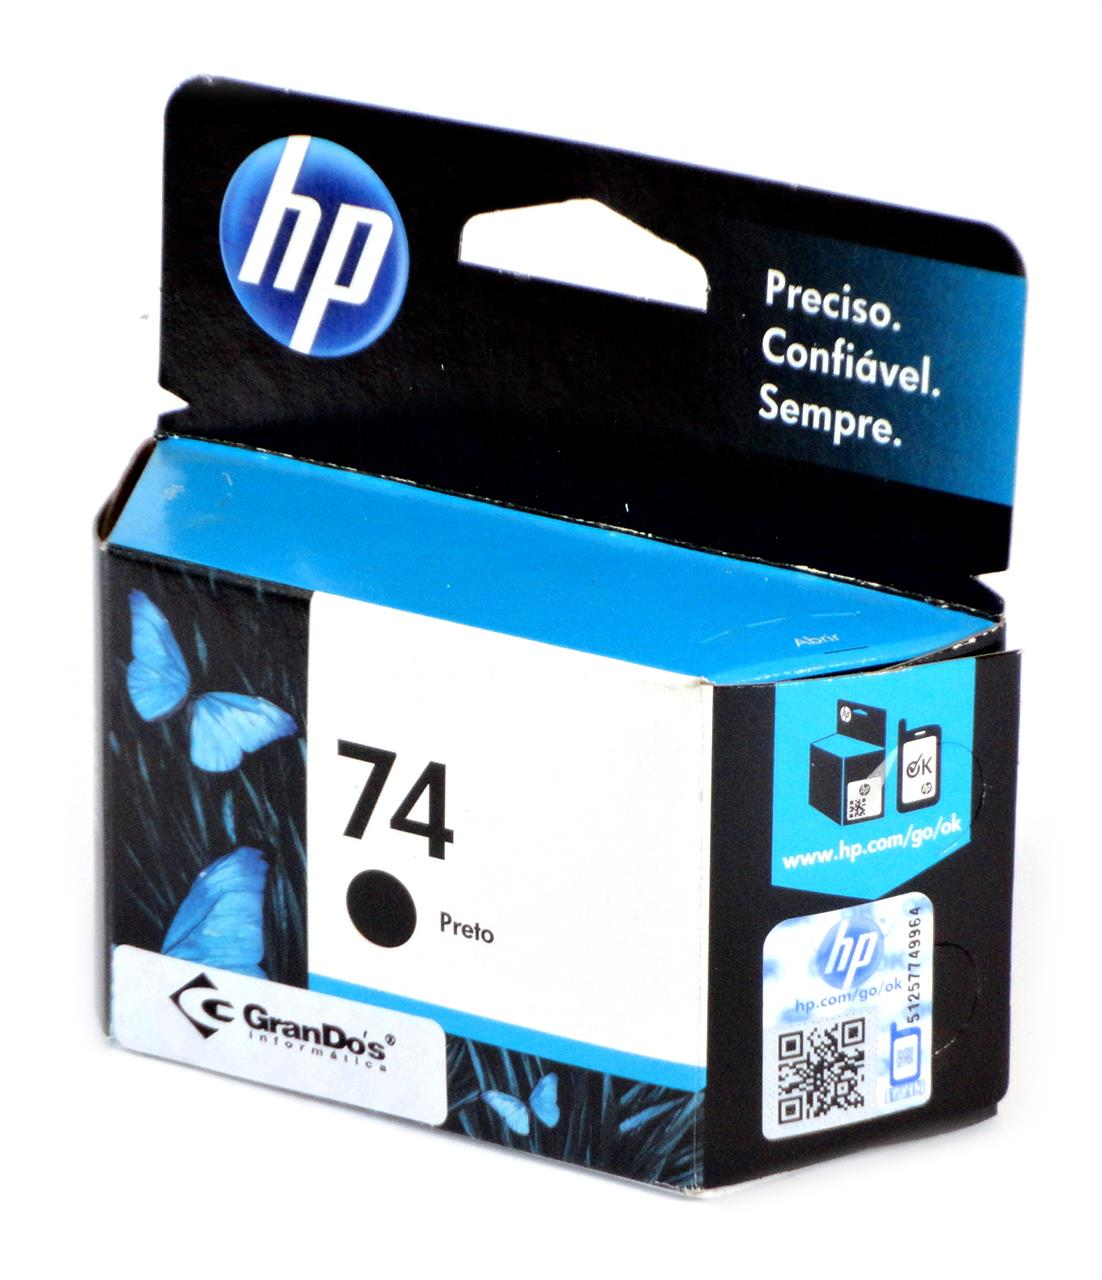 Cartucho Original HP 74 Preto CB335WL